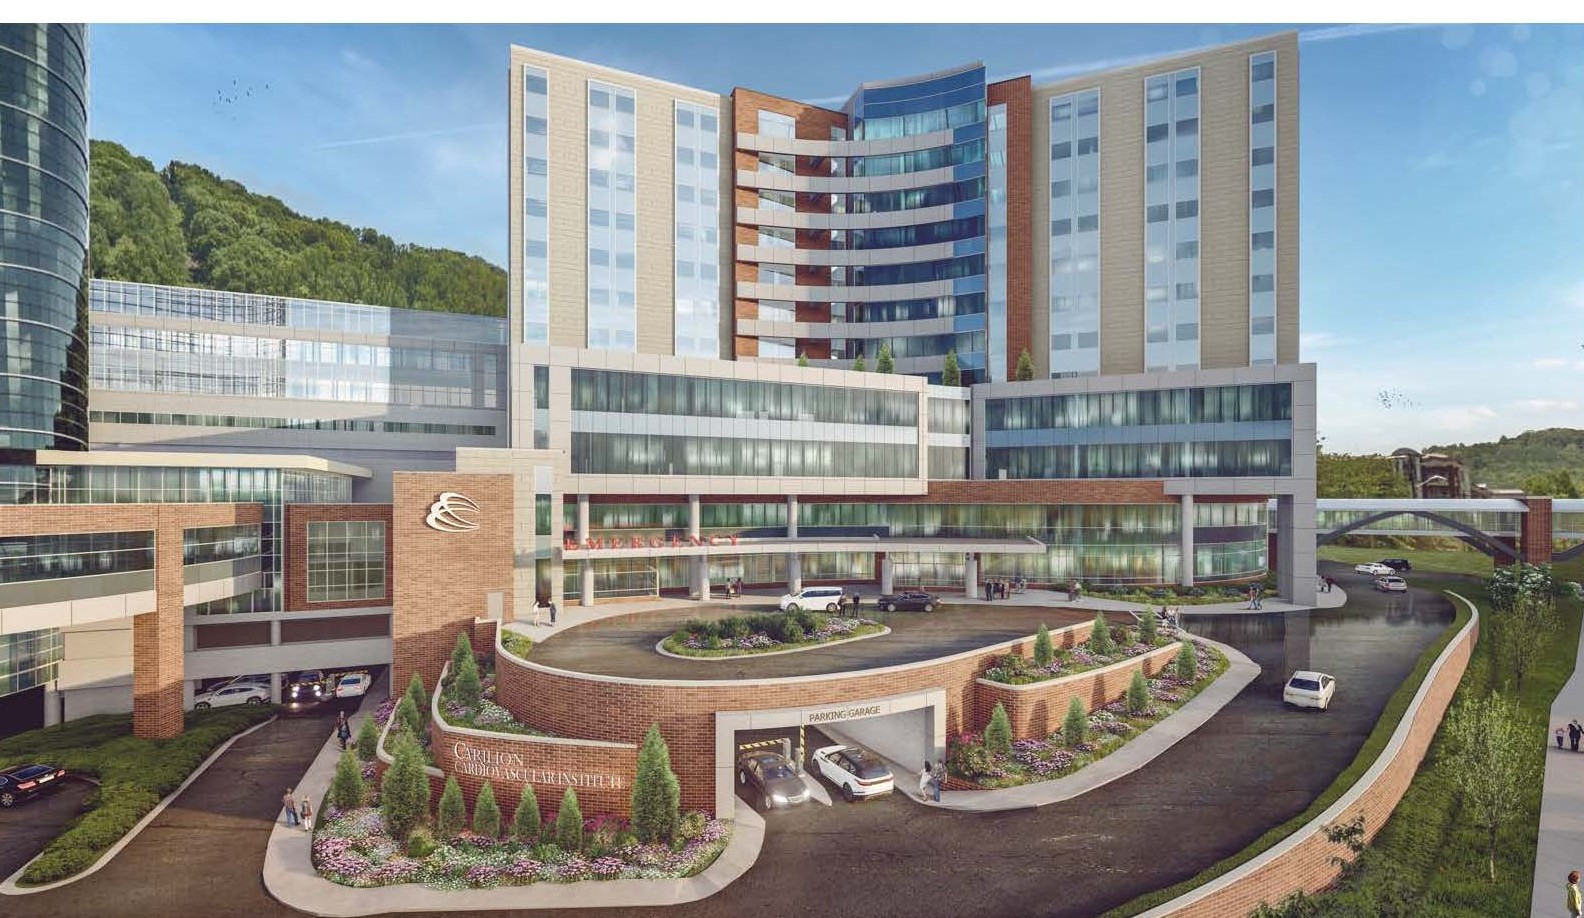 2019.10.29 Carilion_Exterior Renderings_updated 11-11-2019_Page_2